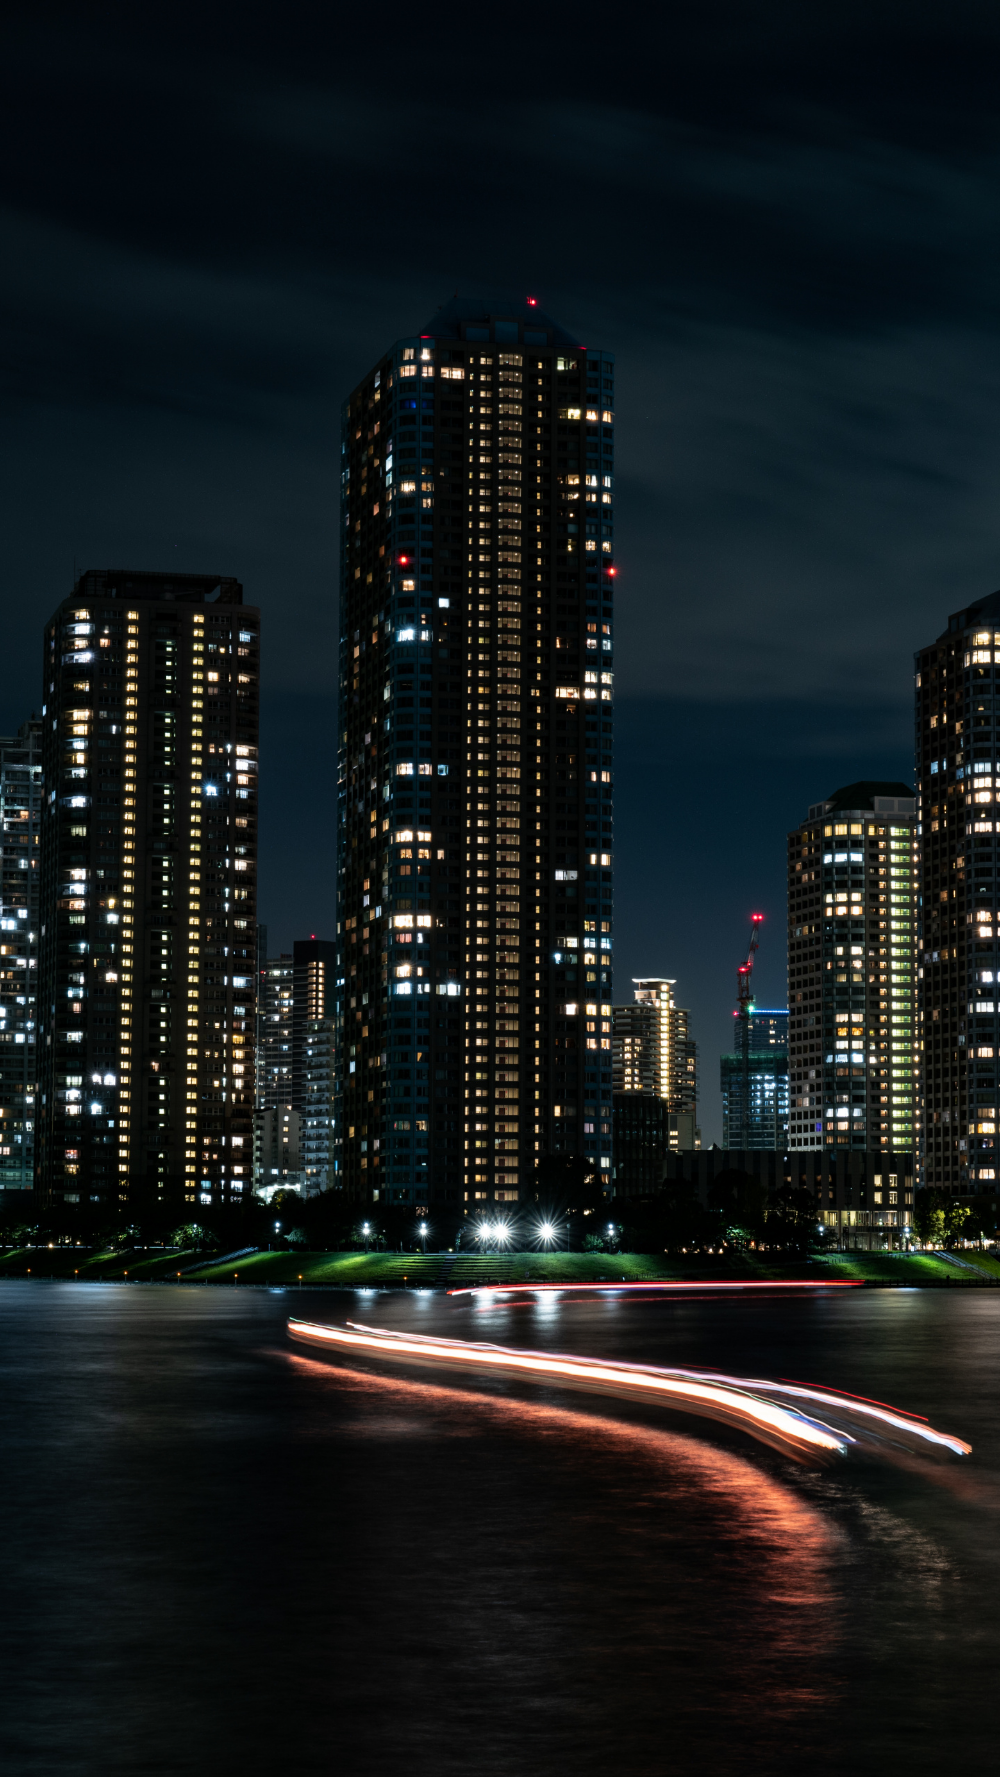 1440x2560 Night City Buildings High Towers And Skyscrapers Cityscape Wallpaper Cityscape Wallpaper Skyscraper City Wallpaper